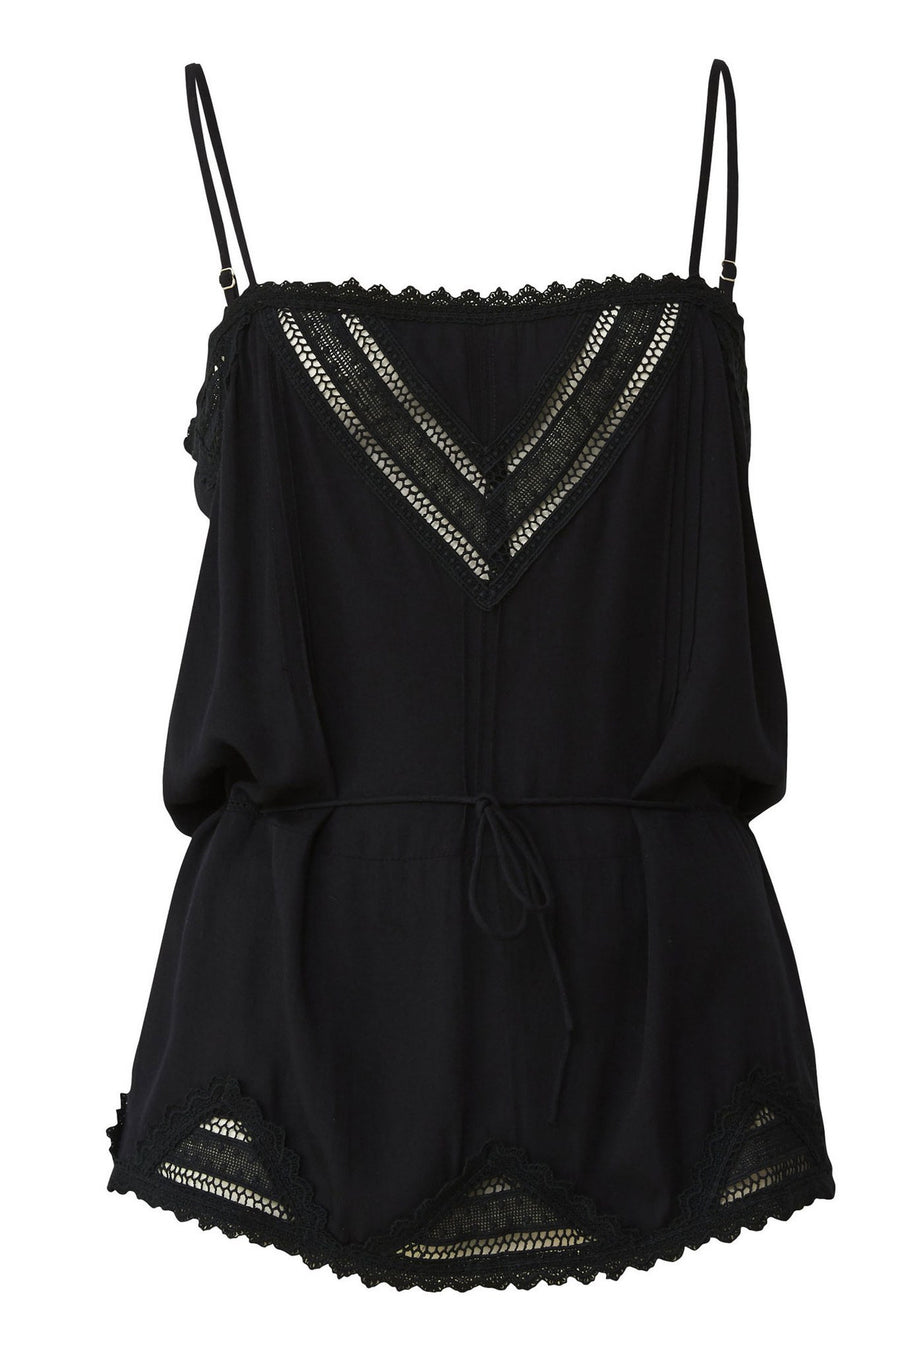 victorian-slip-in-black-cami-by-auguste